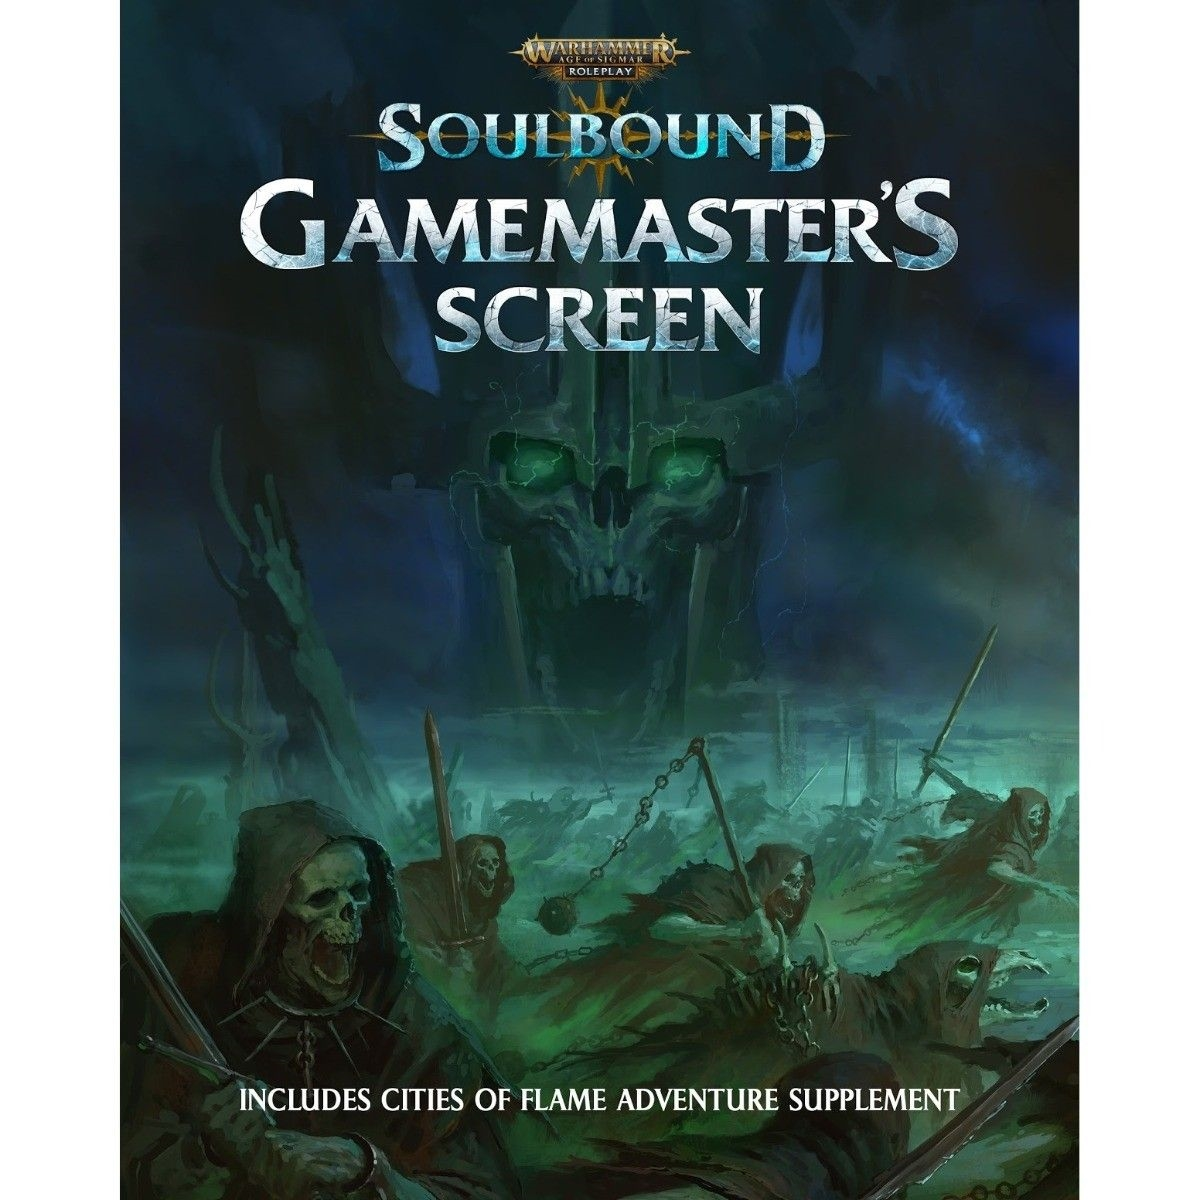 Warhammer Age of Sigmar Roleplay Soulbound Gamemaster's Screen